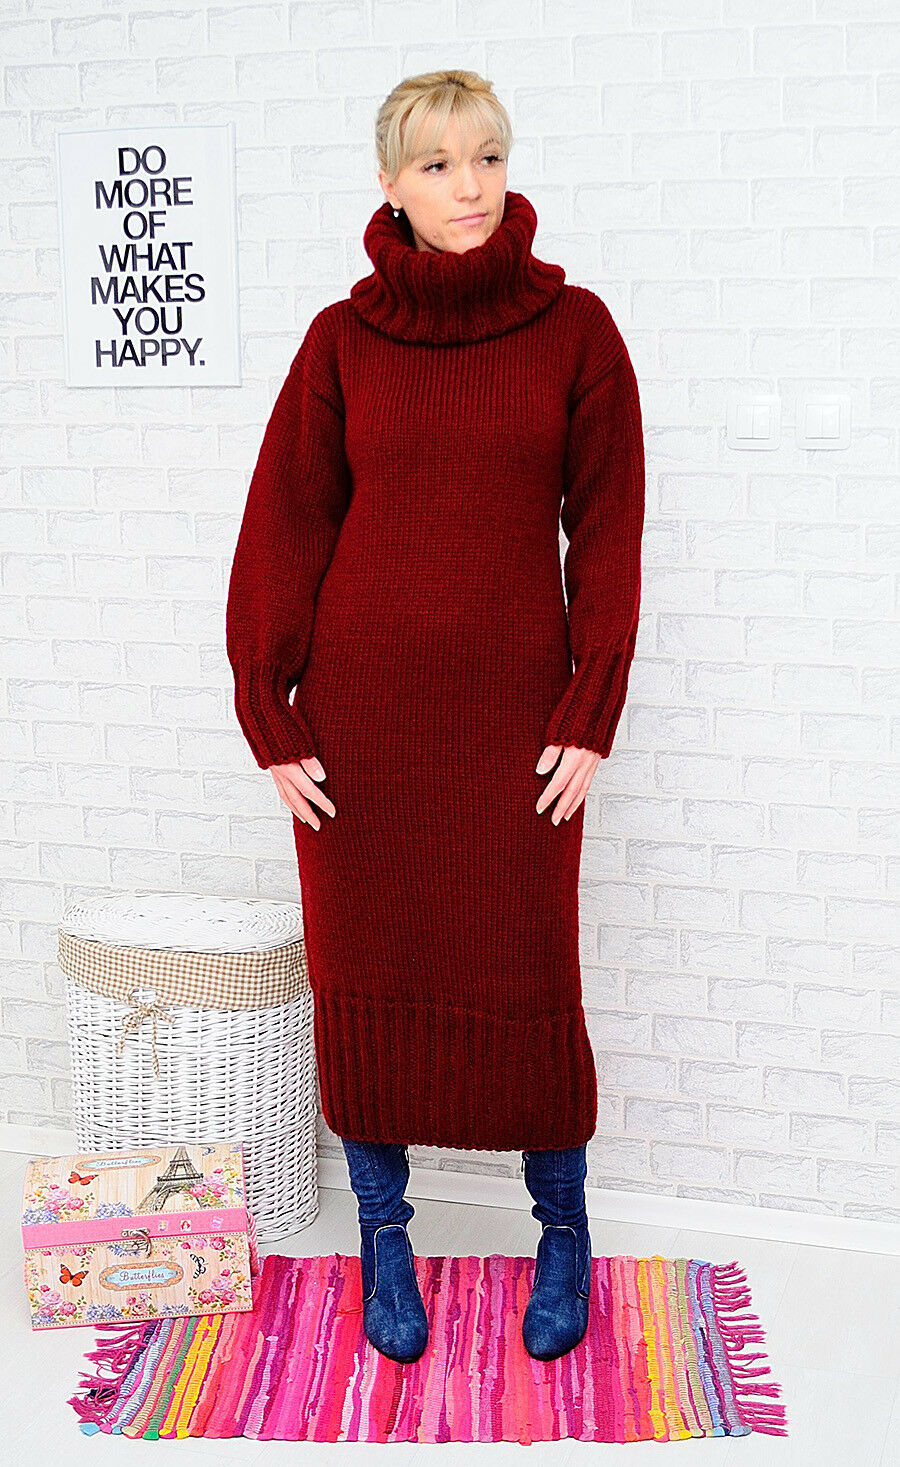 ANGORA Hand Knitted Dress Bordeaux Robe Sweater Mohair Wool Handmade Handmade Handmade NEW SALE  ️ 2e5c8a